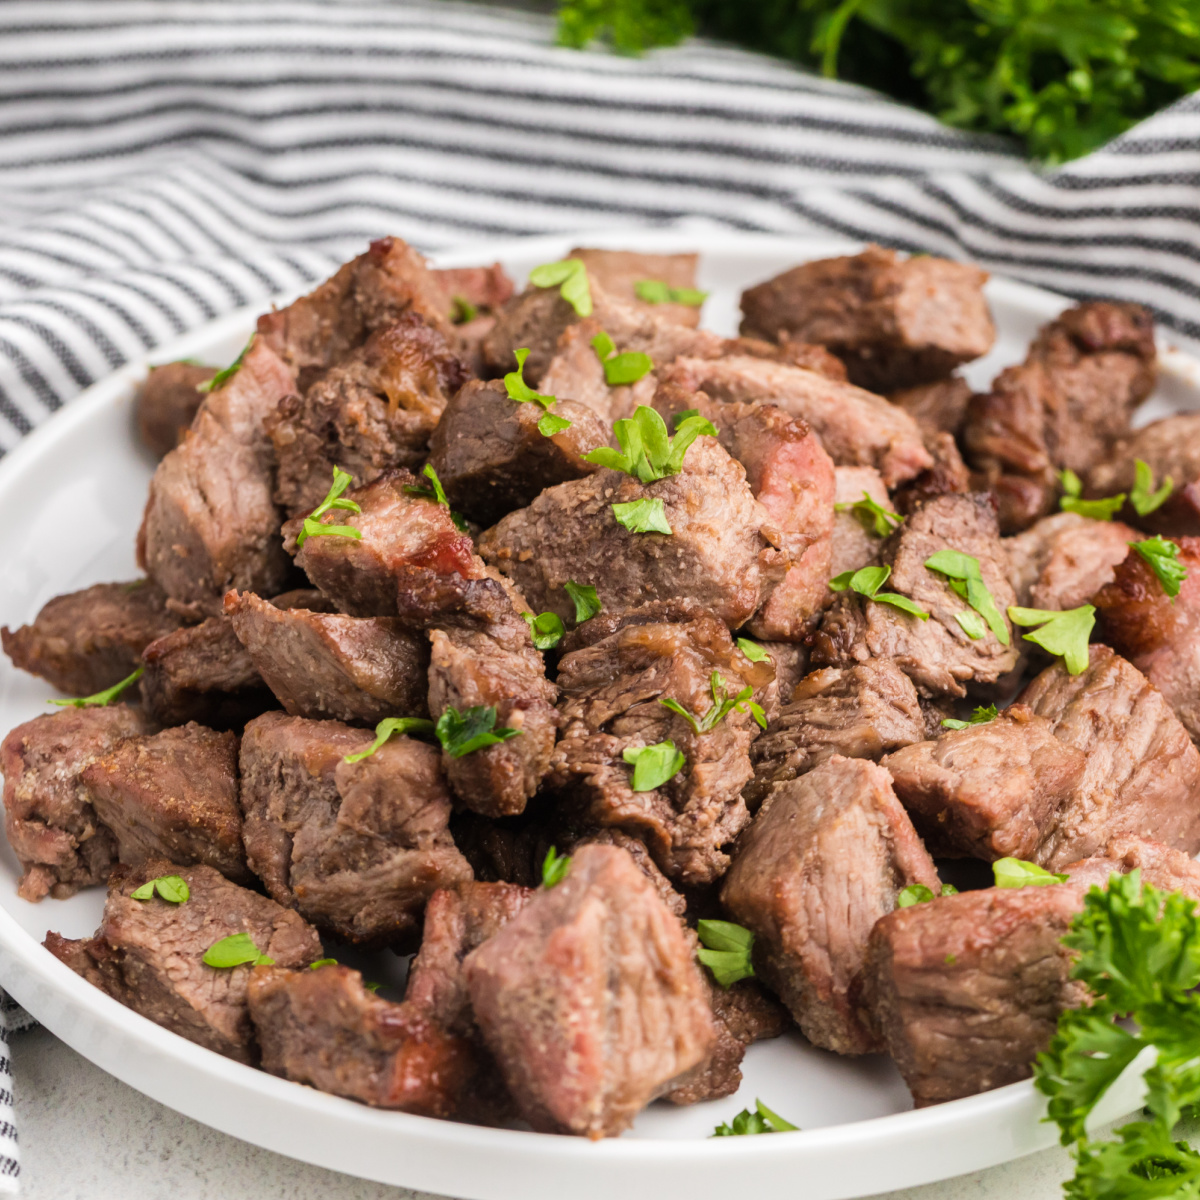 steak bites on a white plate and garnished with fresh parsley.